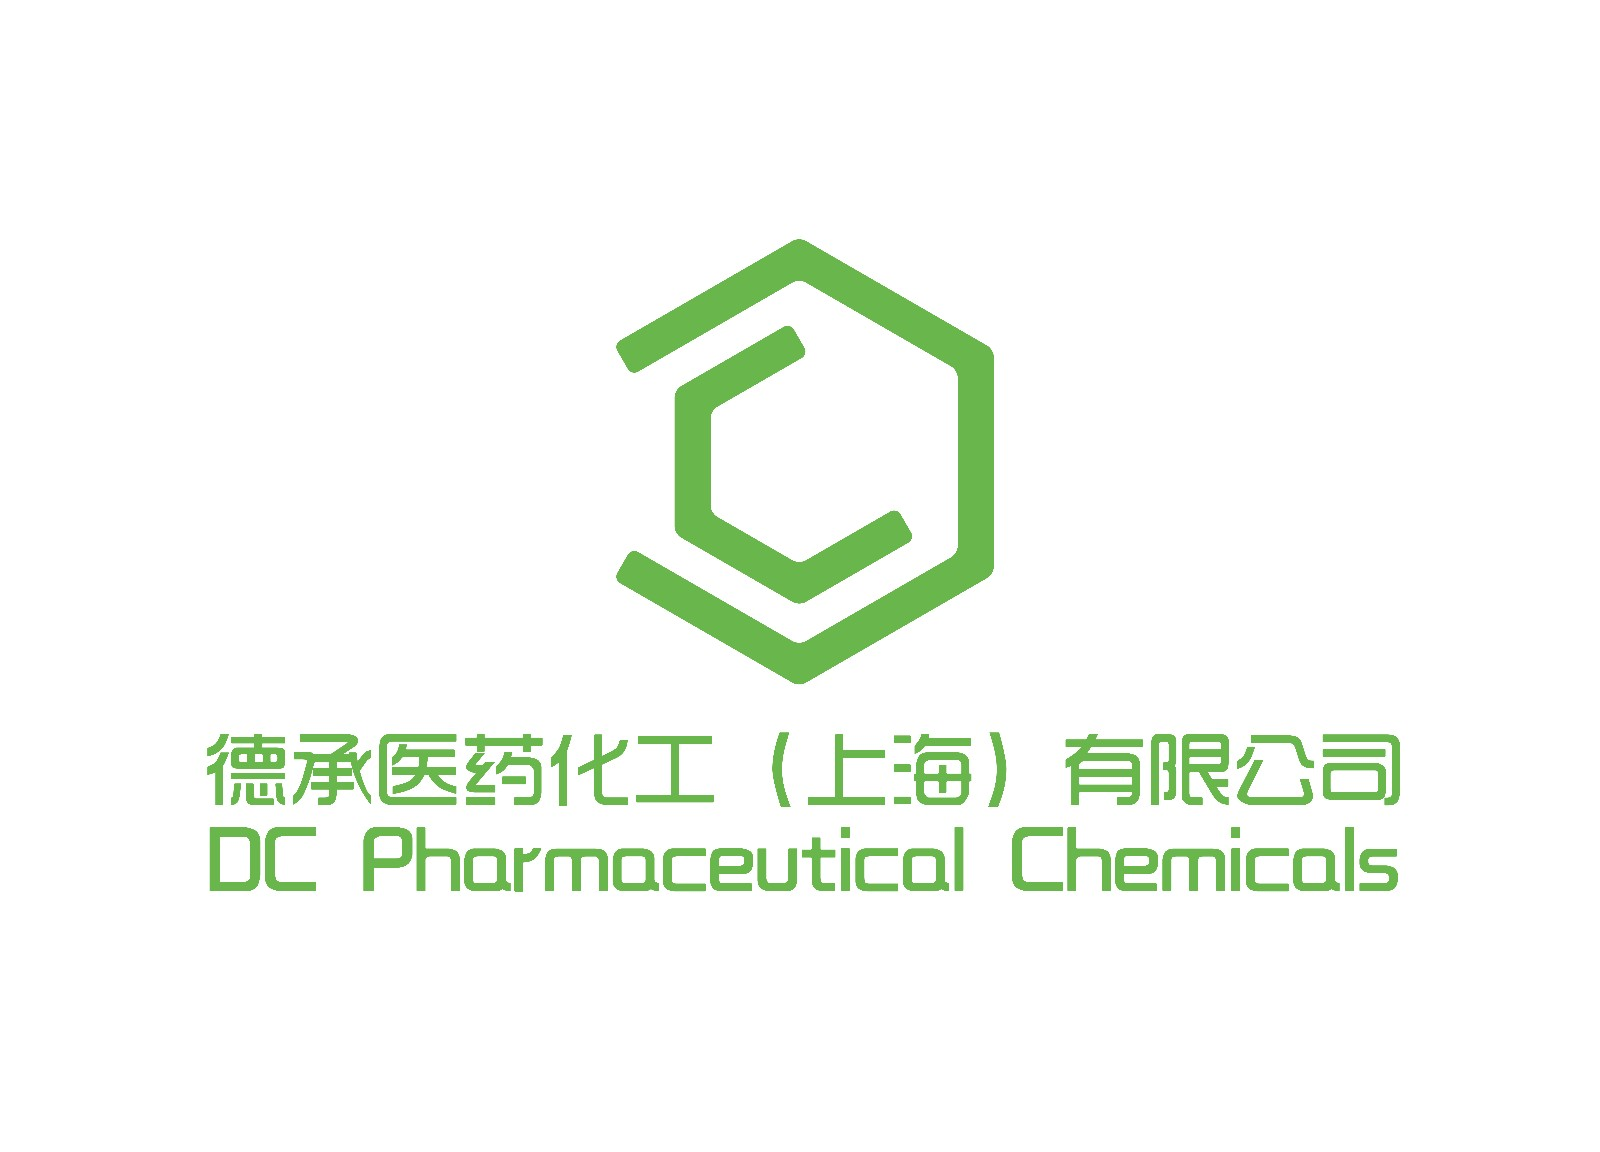 DC Pharmaceutical Chemicals (Shanghai) Co., Ltd.